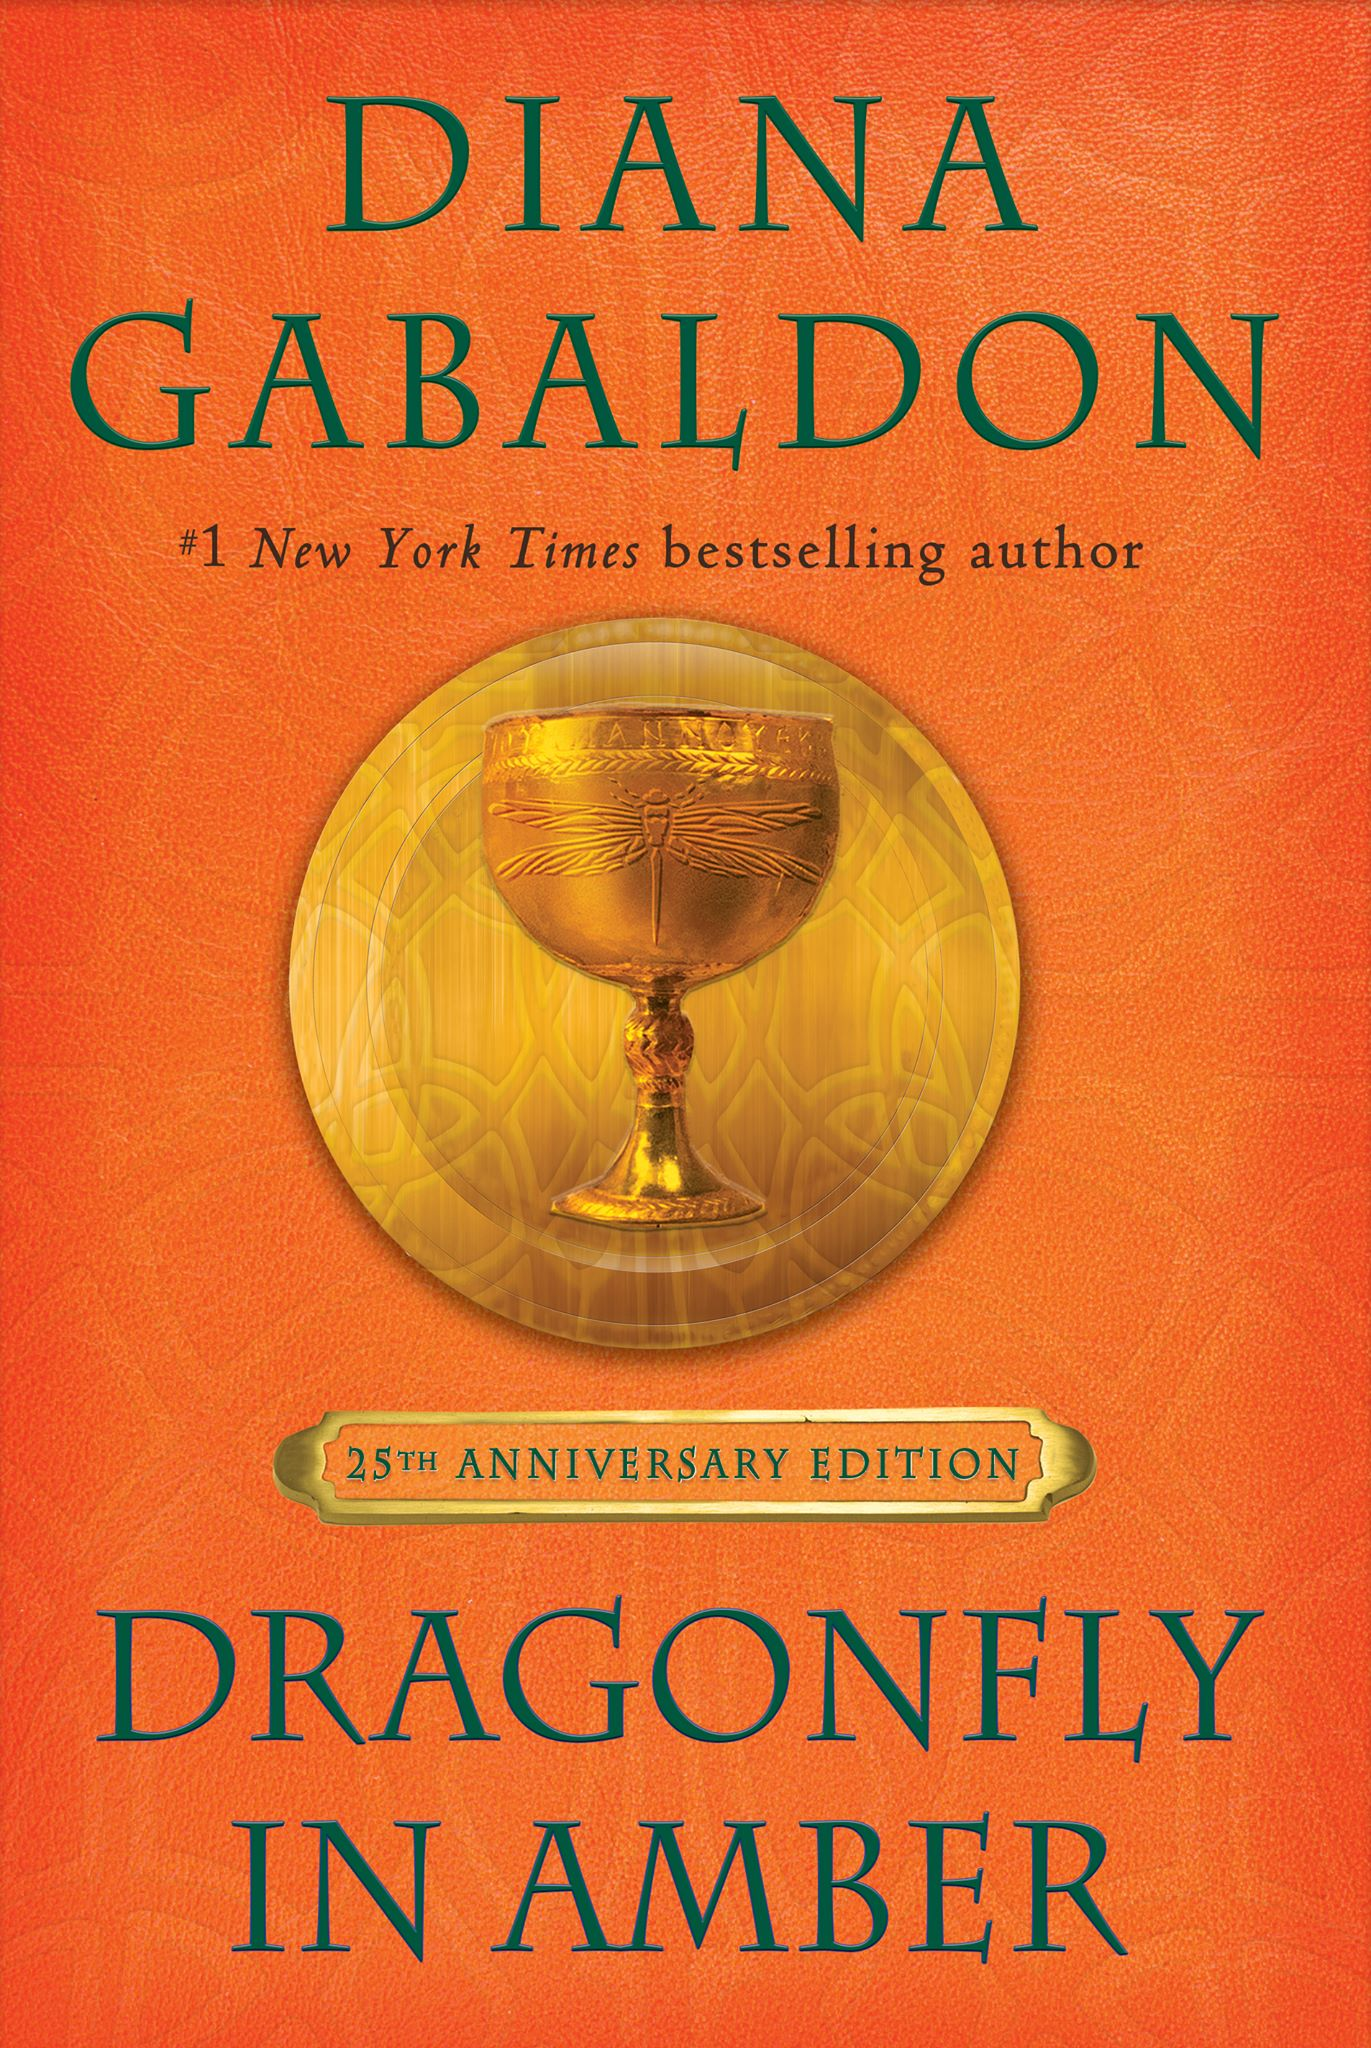 Book Covered : Dianagabaldon dragonfly in amber